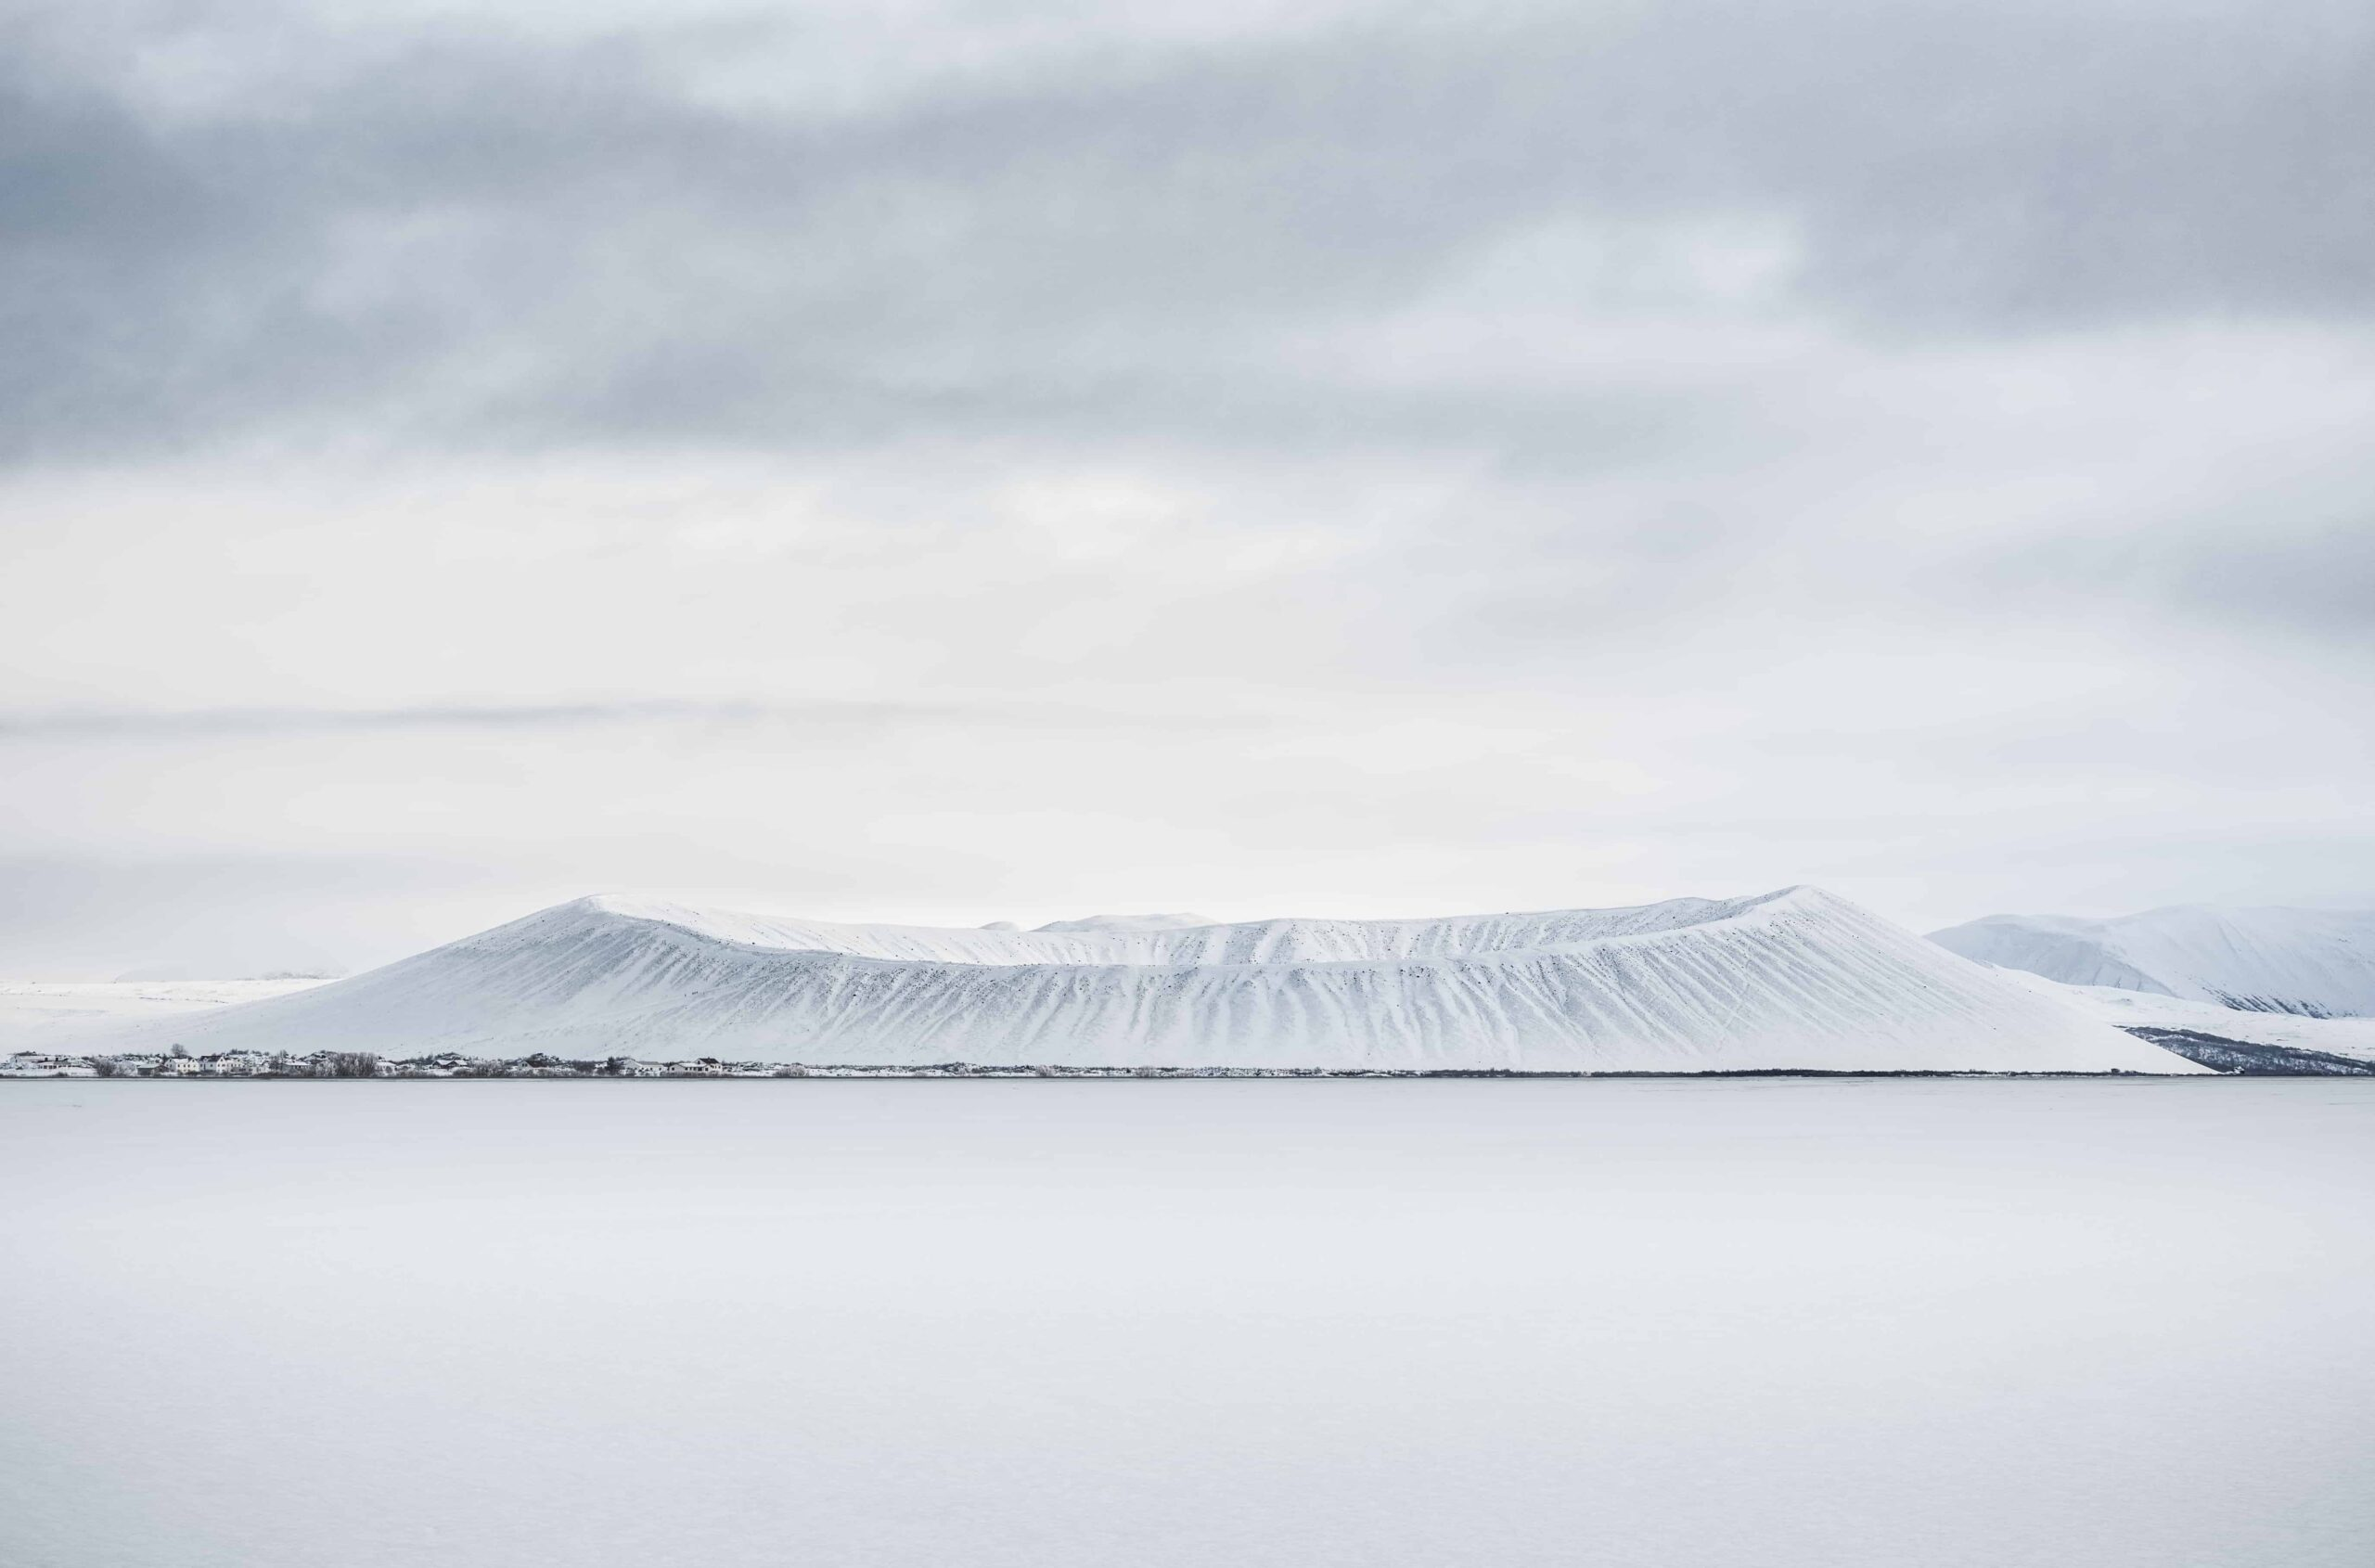 Hverfell - Hverfjall in north Iceland